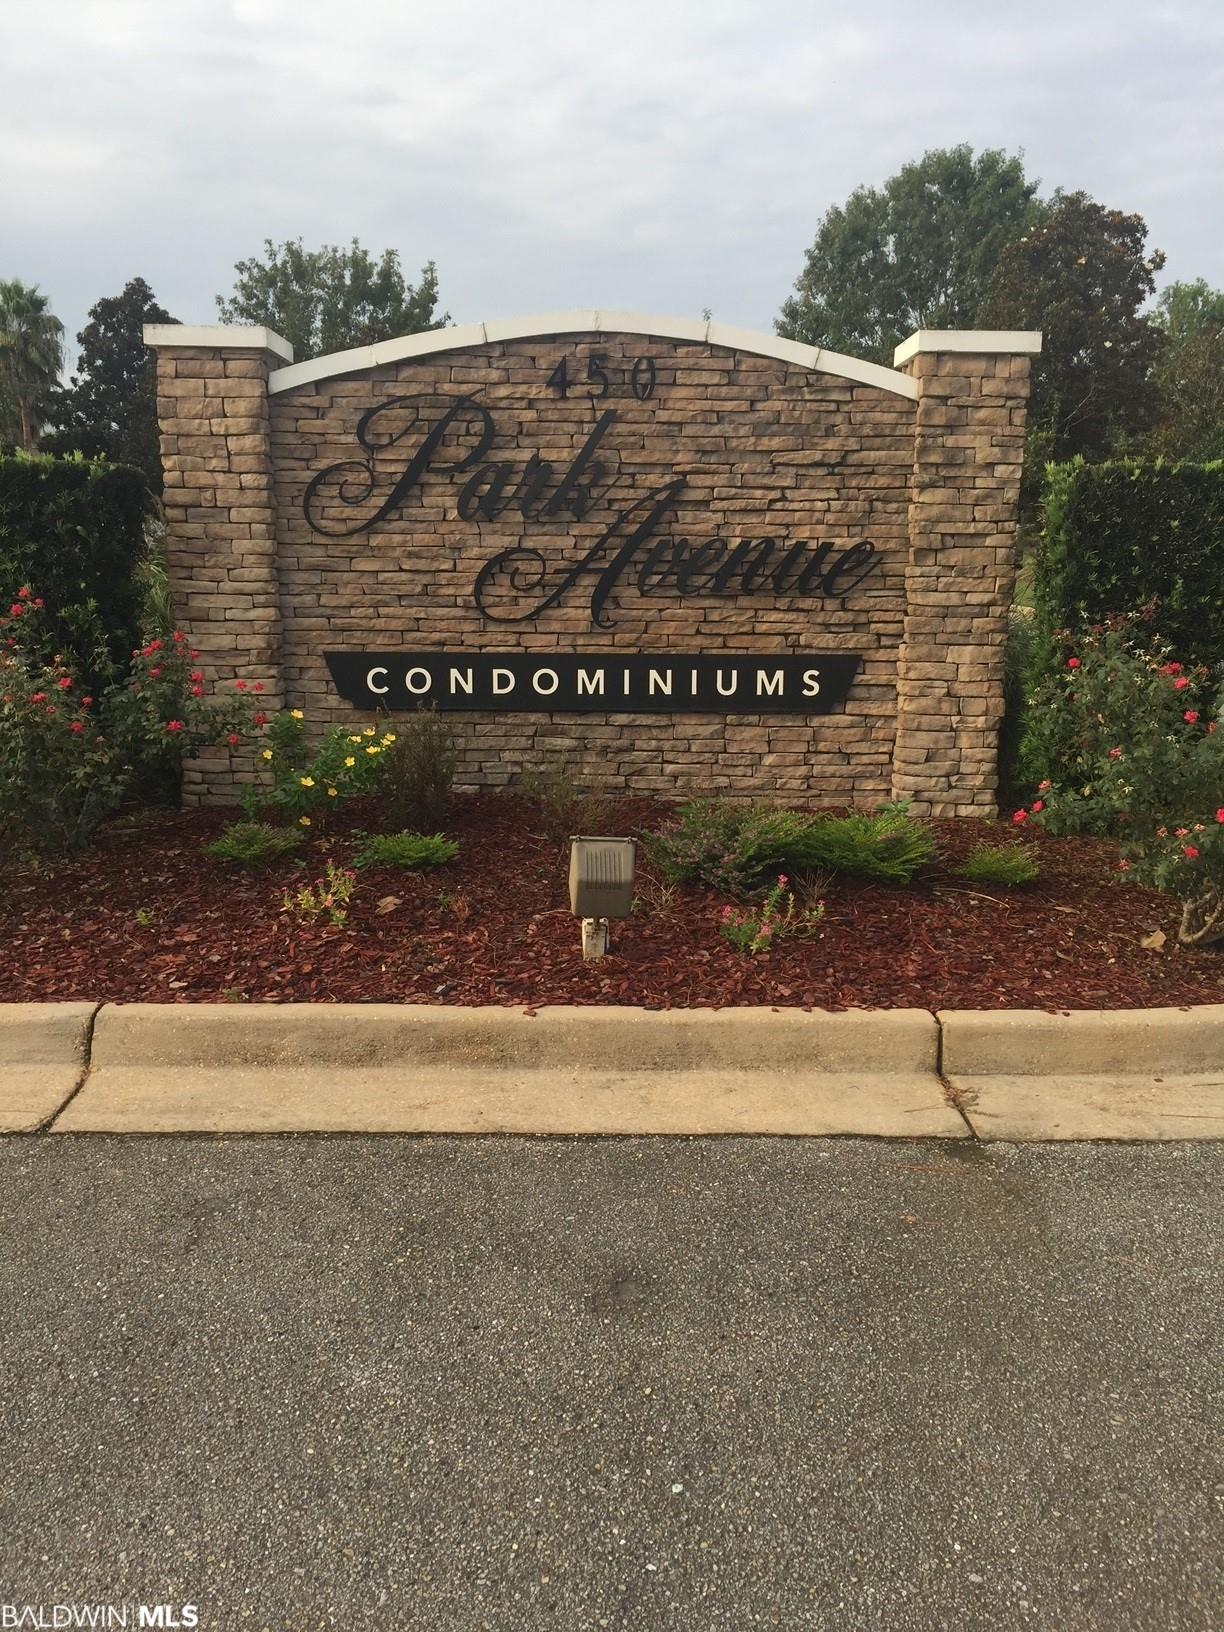 Ground floor, 3 bedroom unit at Park Avenue Condos in Foley.  Great location close to grocery stores, restaurants, shopping, parks...not to mention located approximately 12 miles away from the beautiful beaches on Alabama's Gulf Coast!